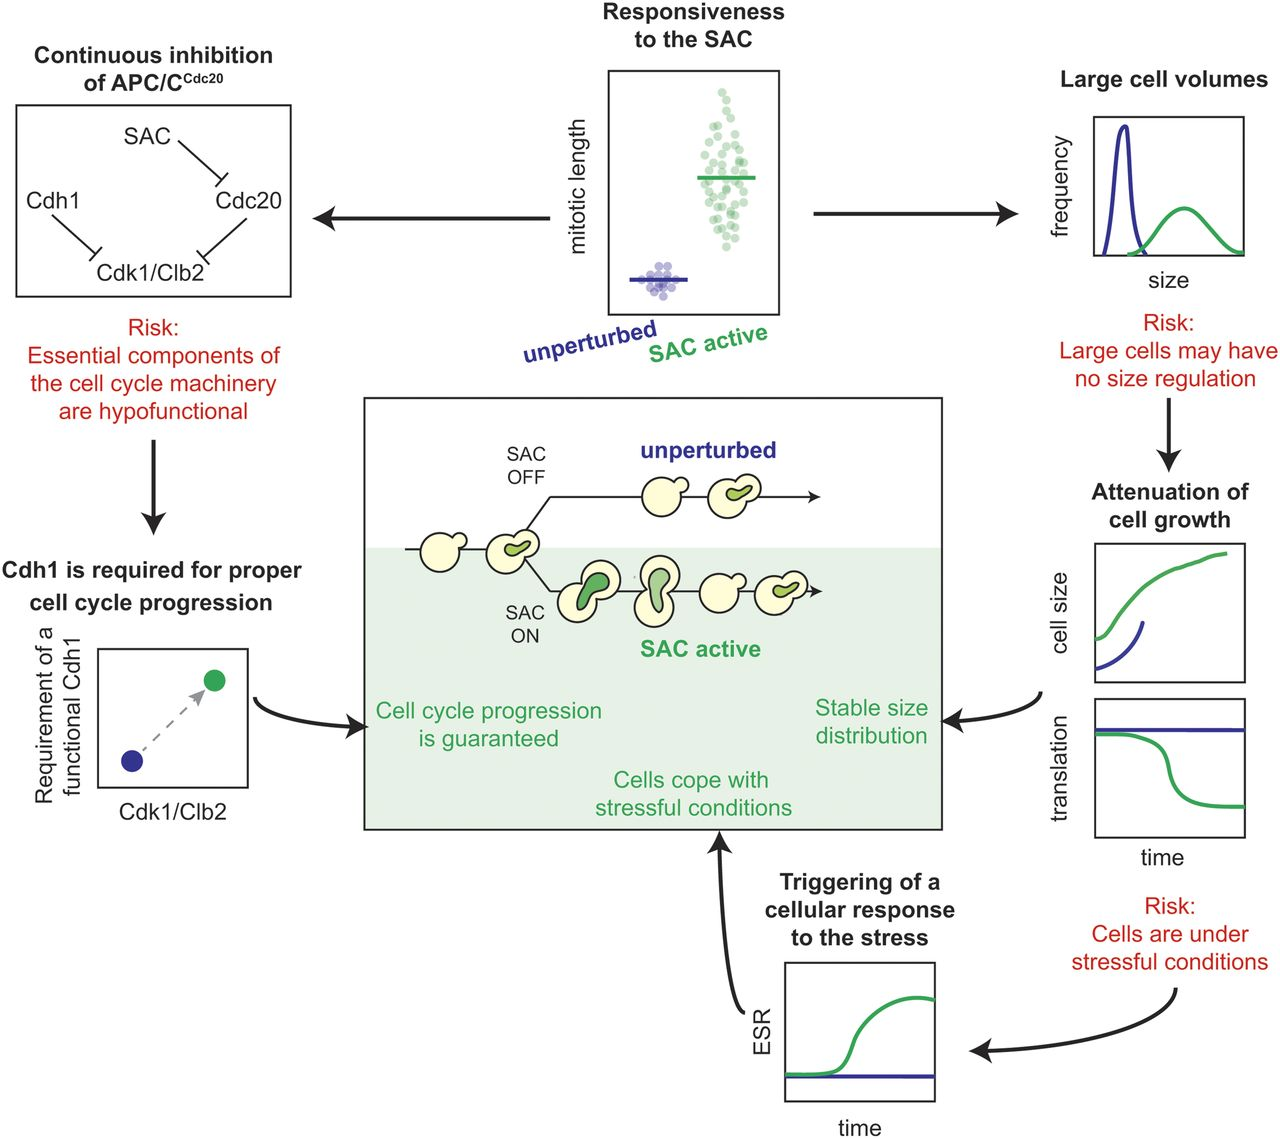 Cellular response upon proliferation in the presence of an active